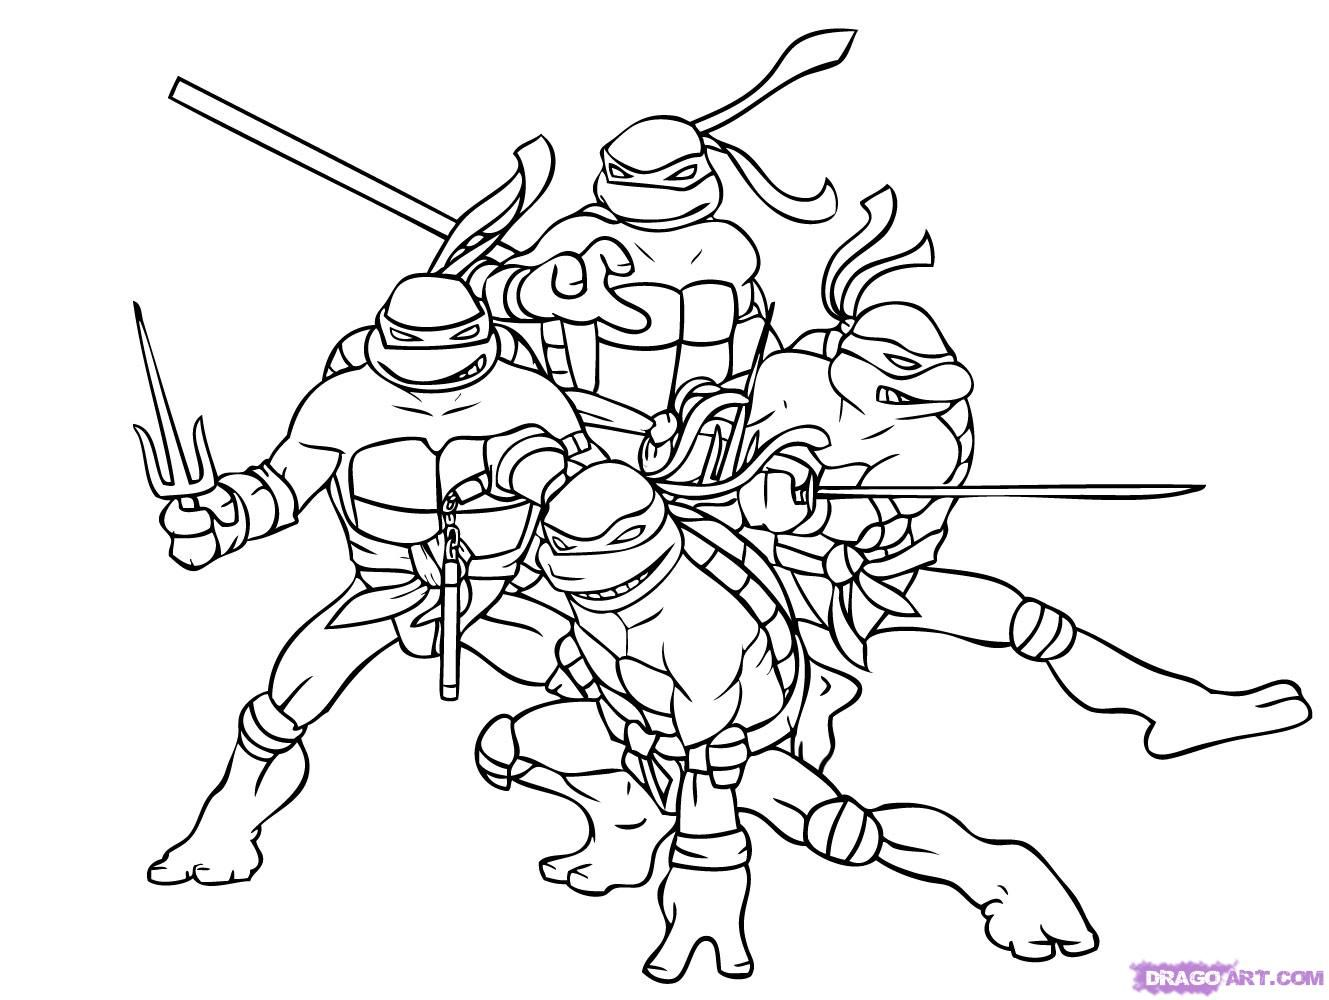 Free coloring pages of ninja turtles - Teenage Mutant Ninja Turtles Coloring Pages Teenage Mutant Ninja Turtles Christmas Coloring Pages Kids Coloring Pages